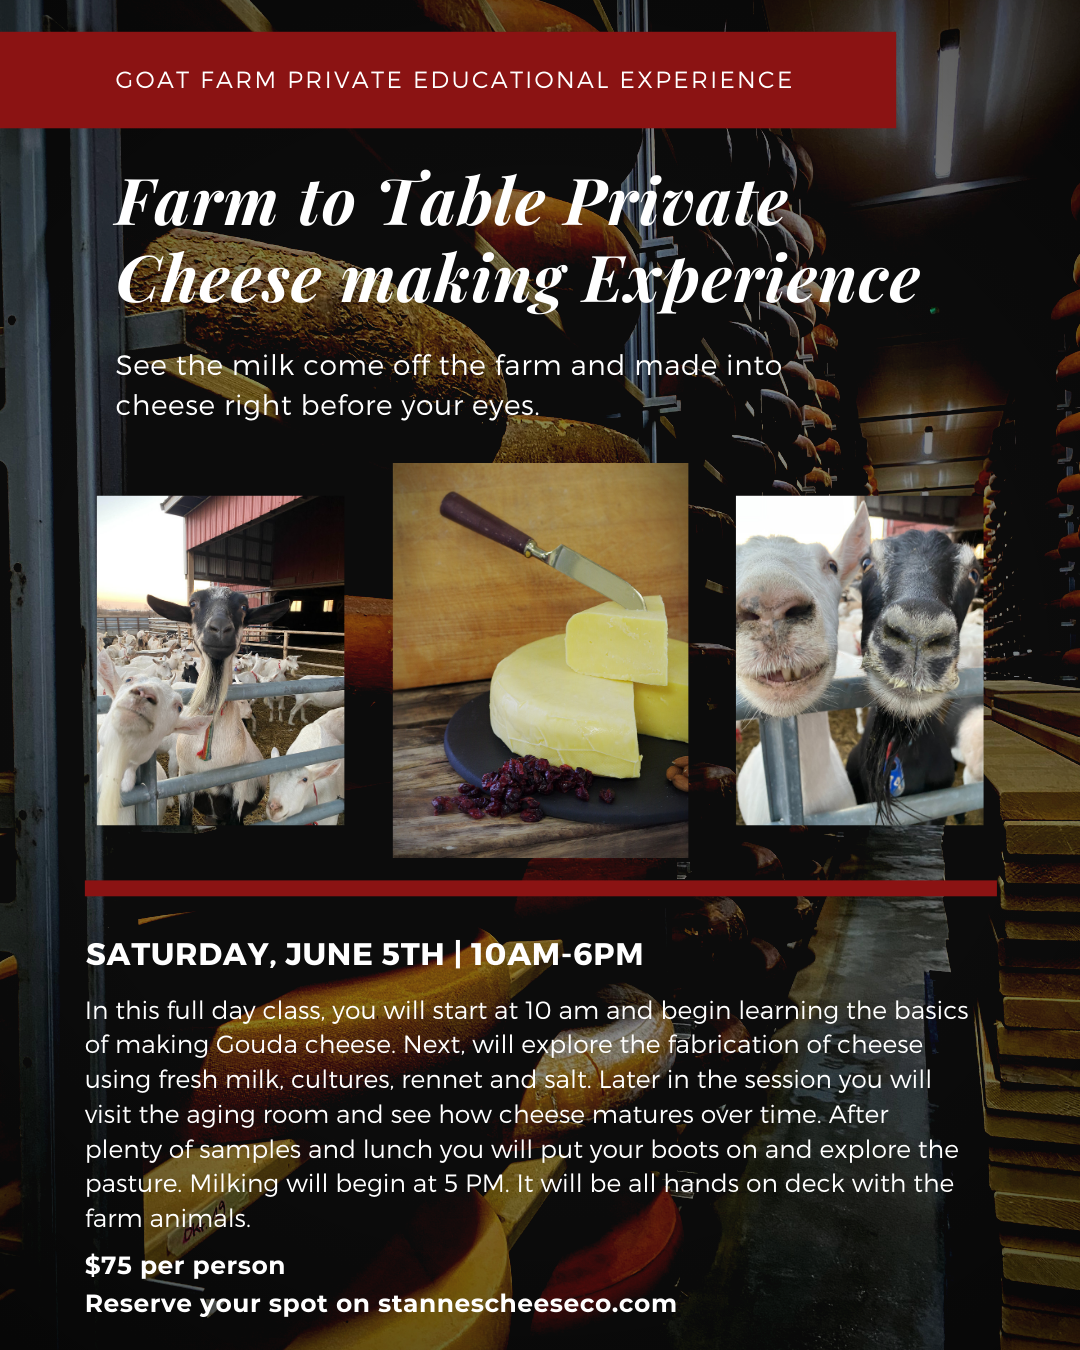 Farm to Table Private Cheese Making Experience | June 5th